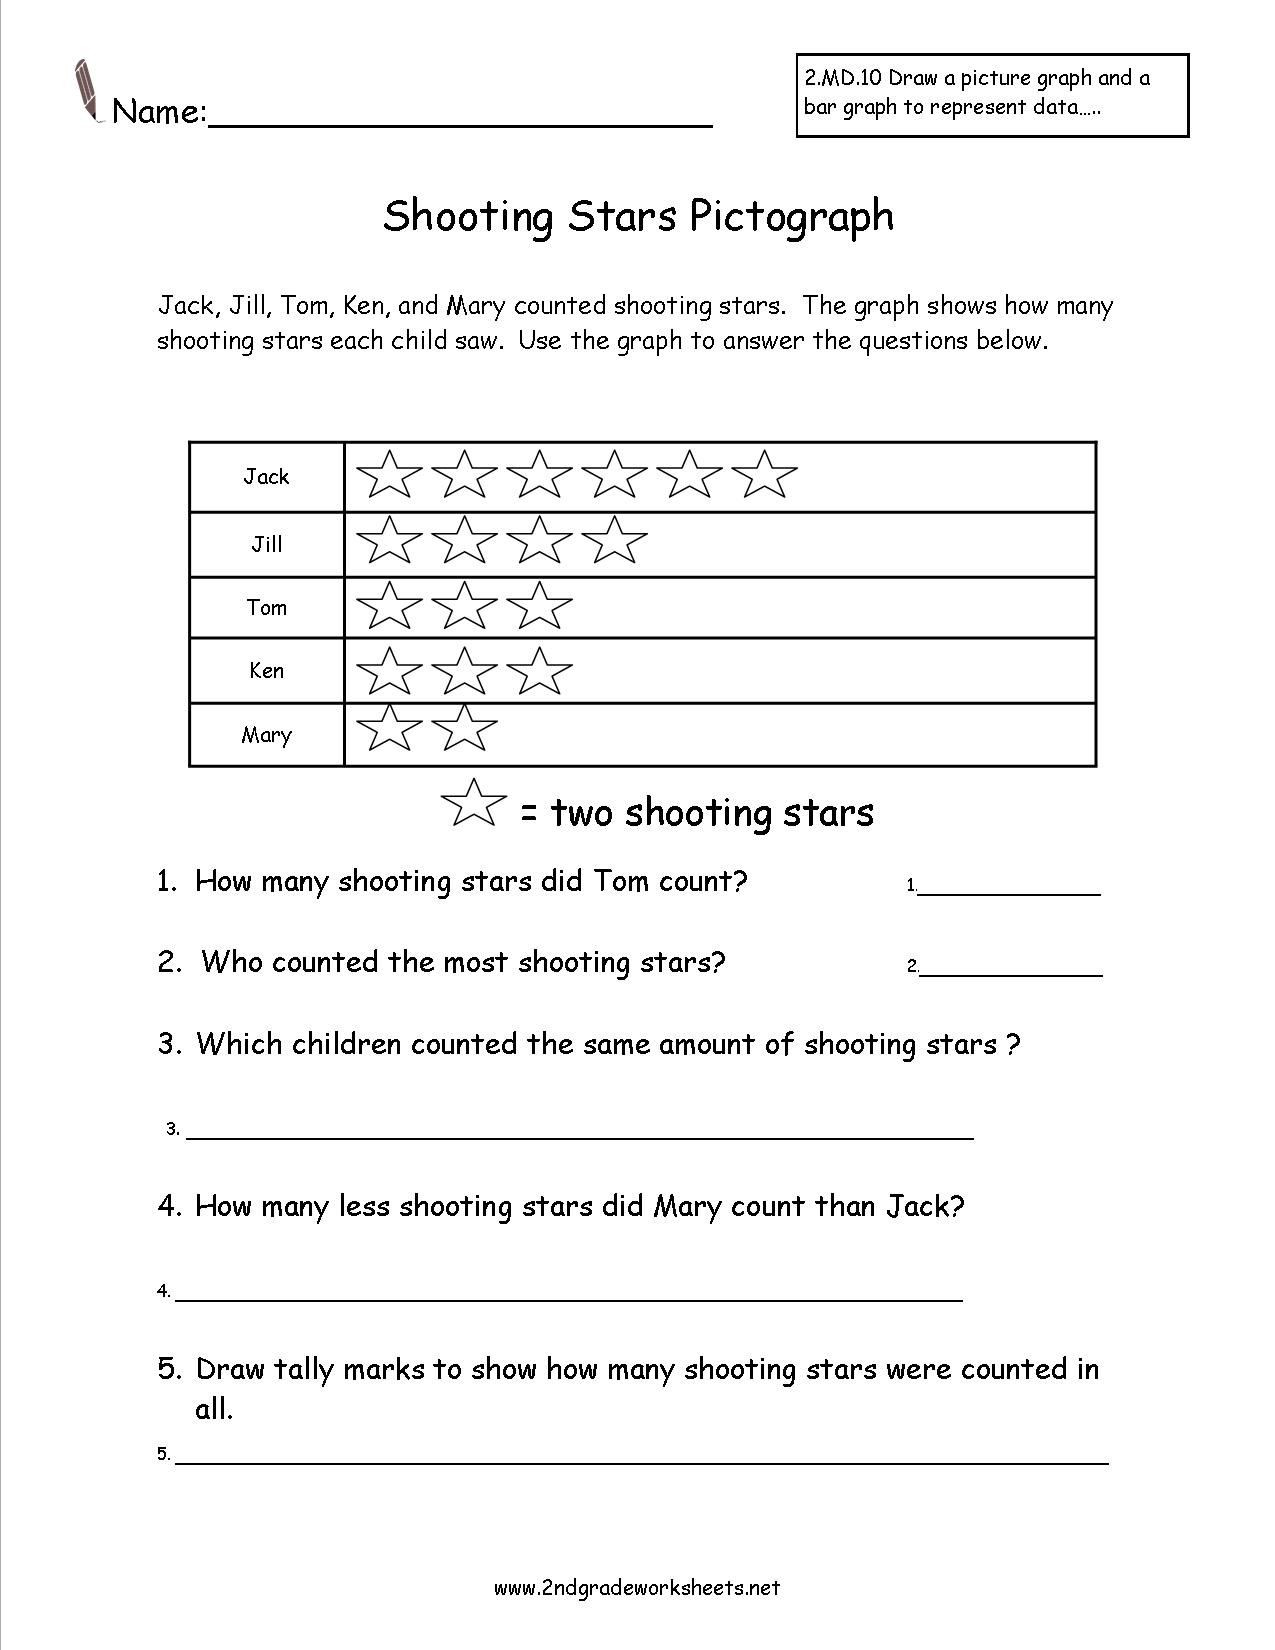 2nd Grade Timeline Worksheets 2nd Grade Worksheets with Answer Key